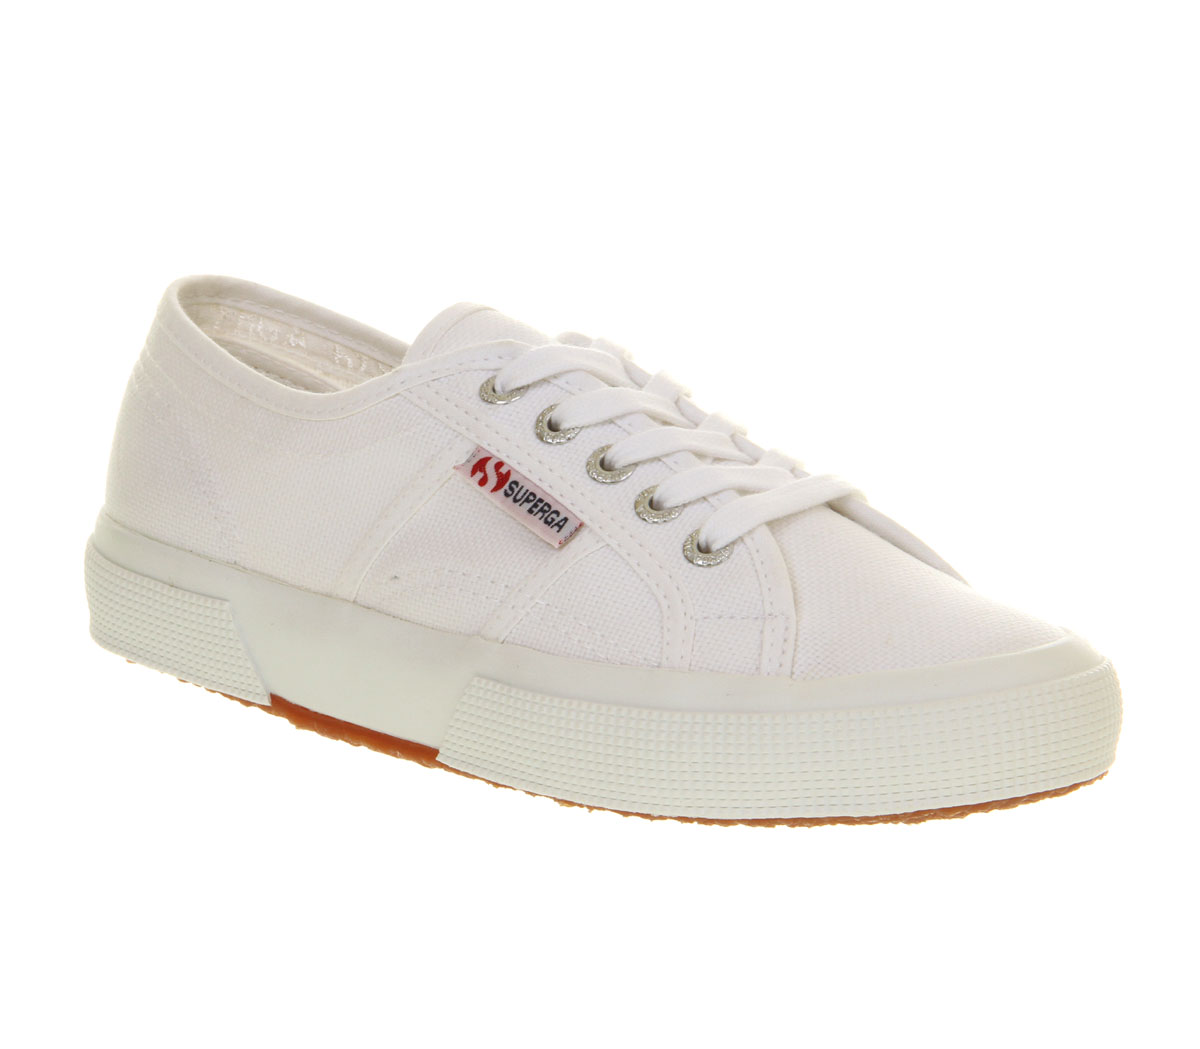 Clothes, Shoes & Accessories > Women's Shoes > Trainers